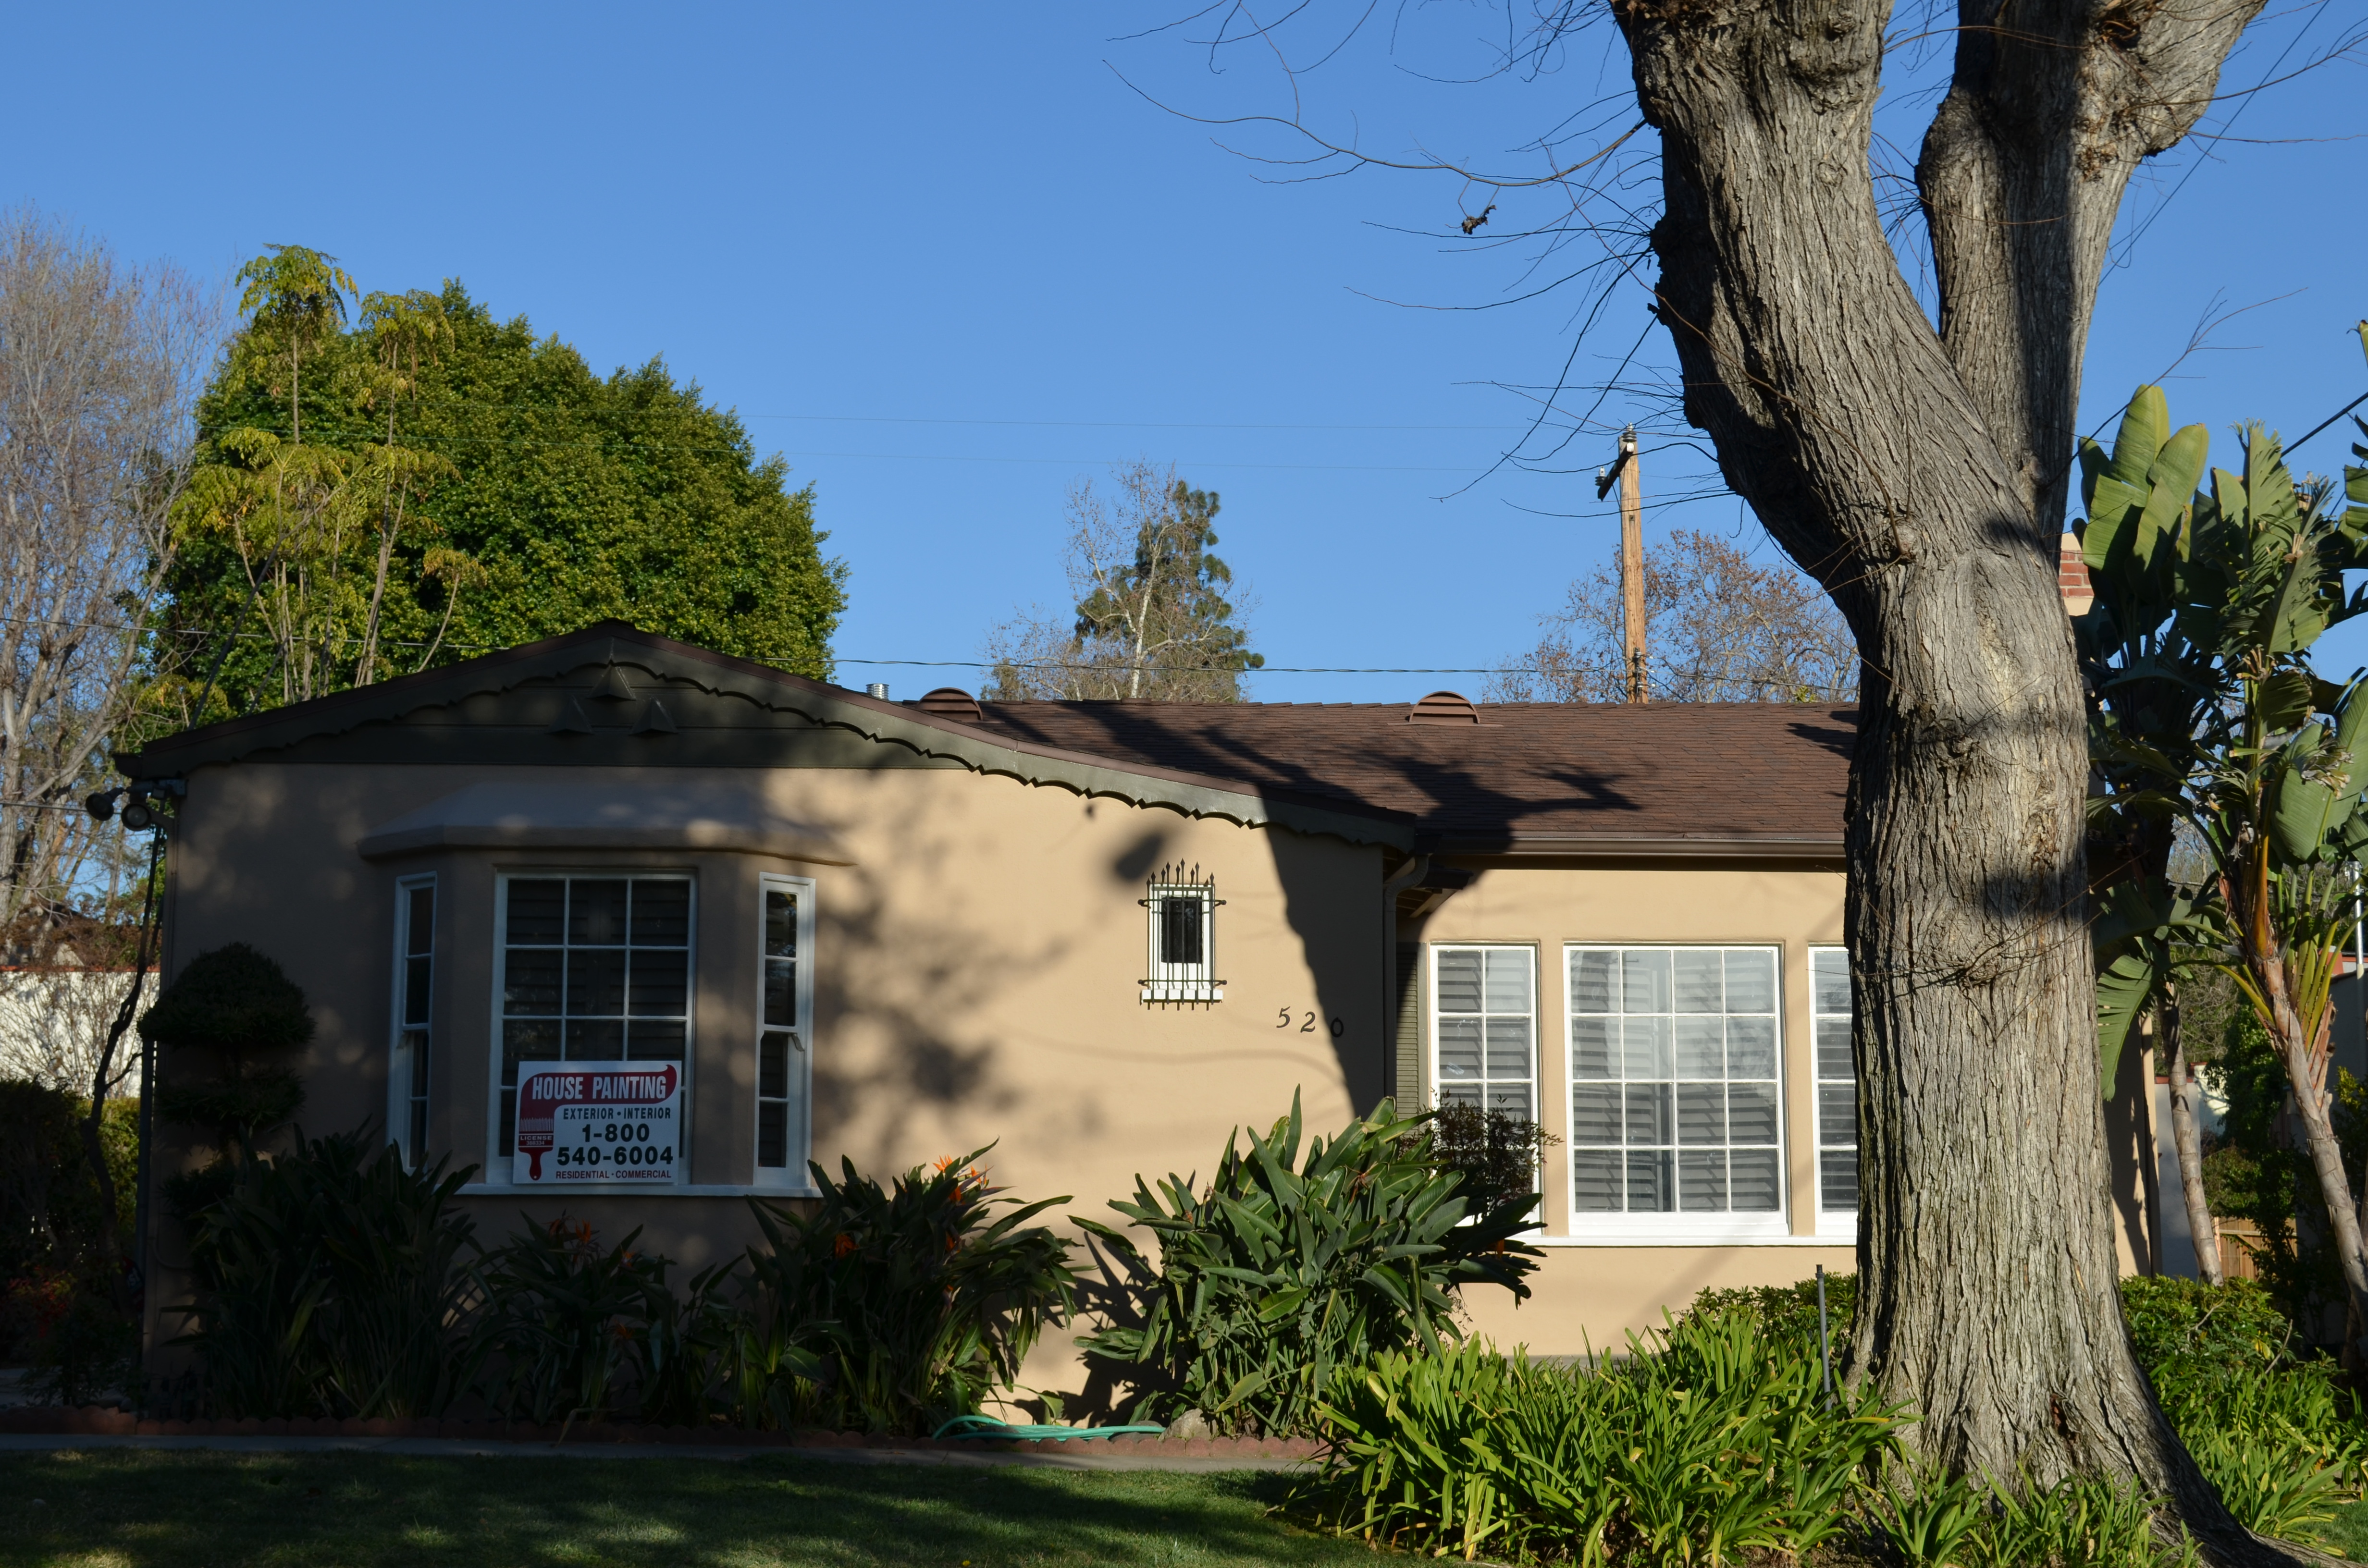 Home interior painter glendale by house painting inc for Glendale house